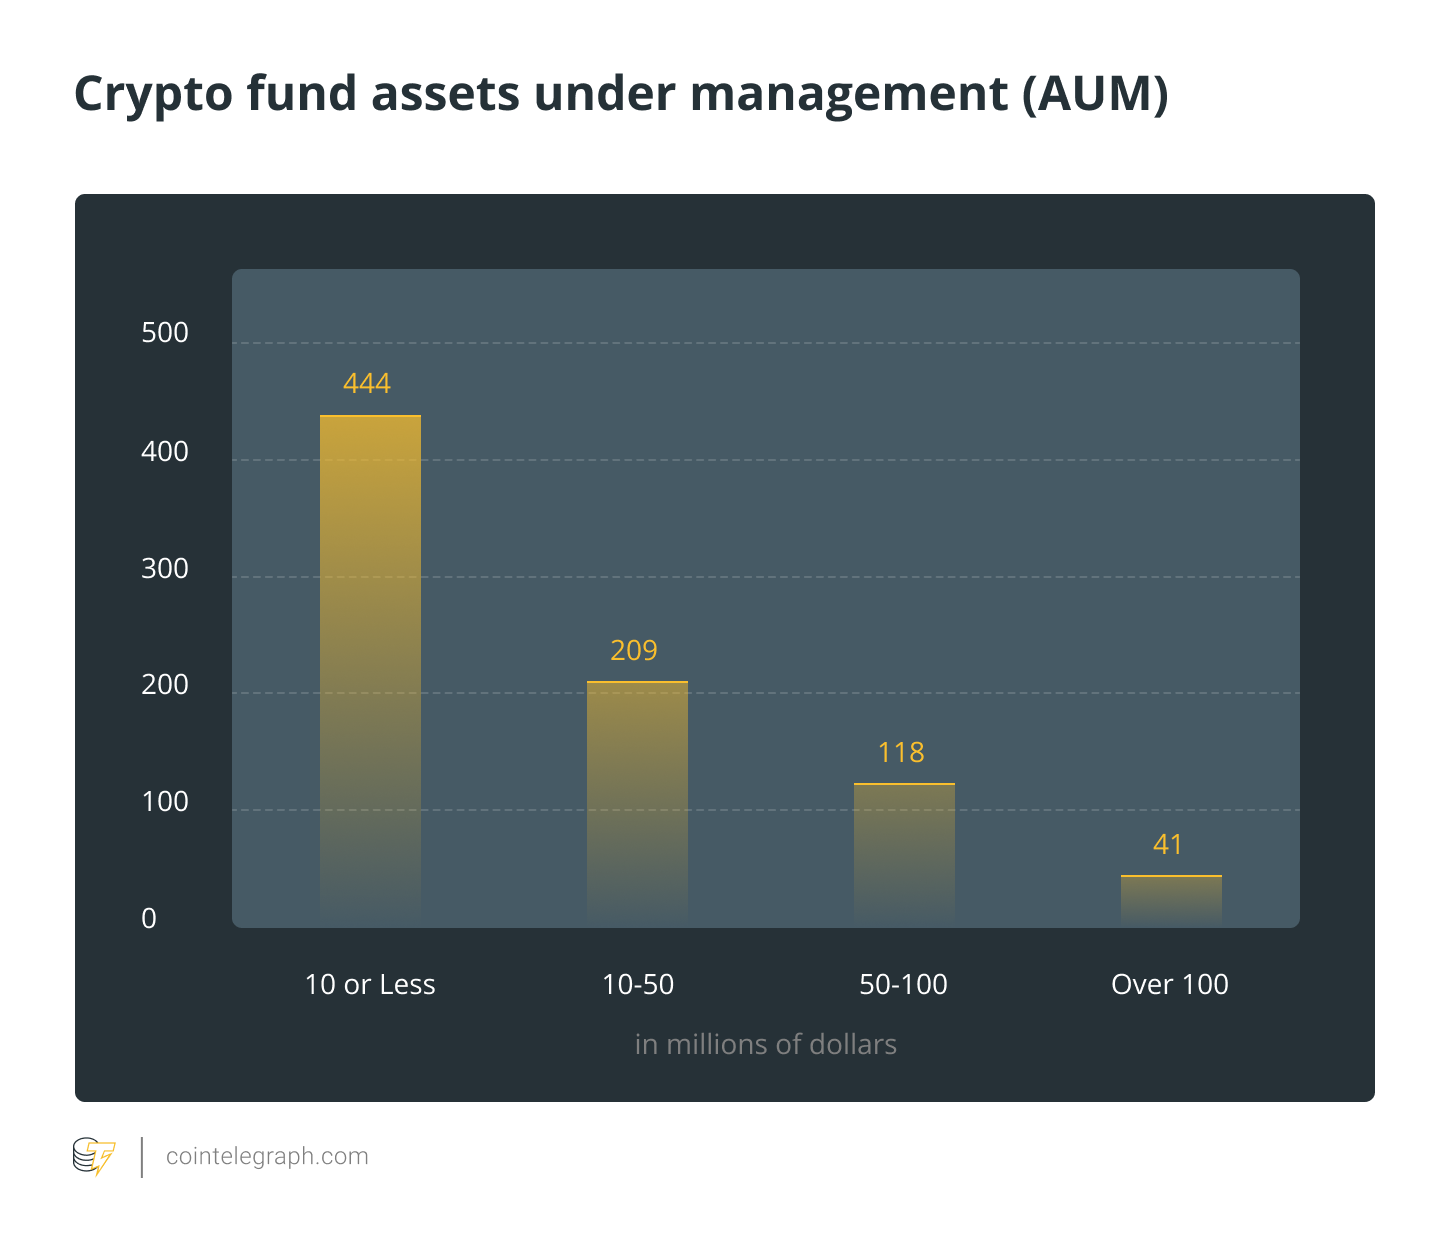 Crypto fund assets under management (AUM)